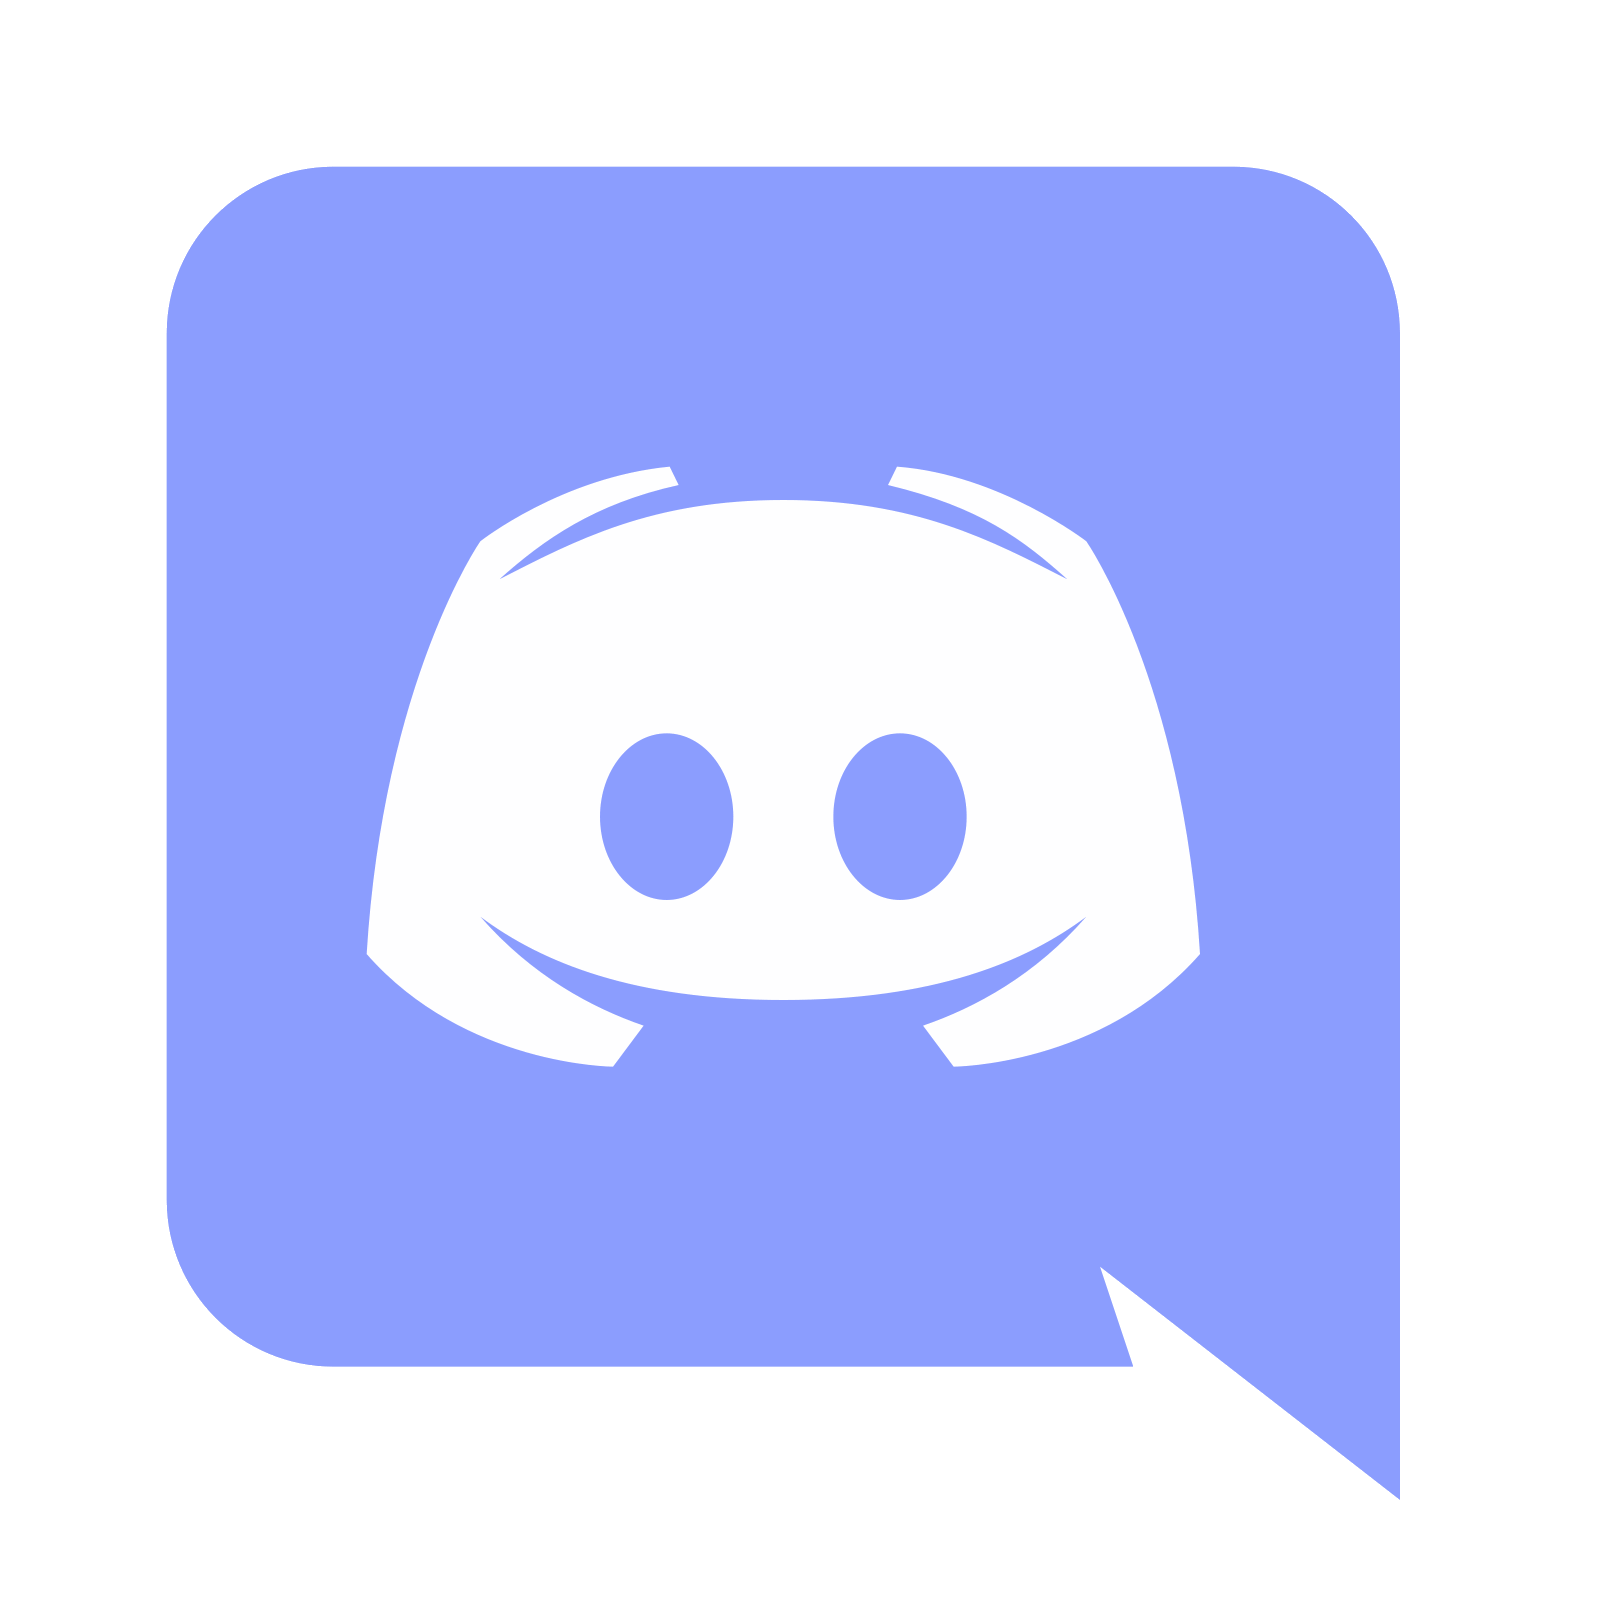 New logo free download. Discord icon png